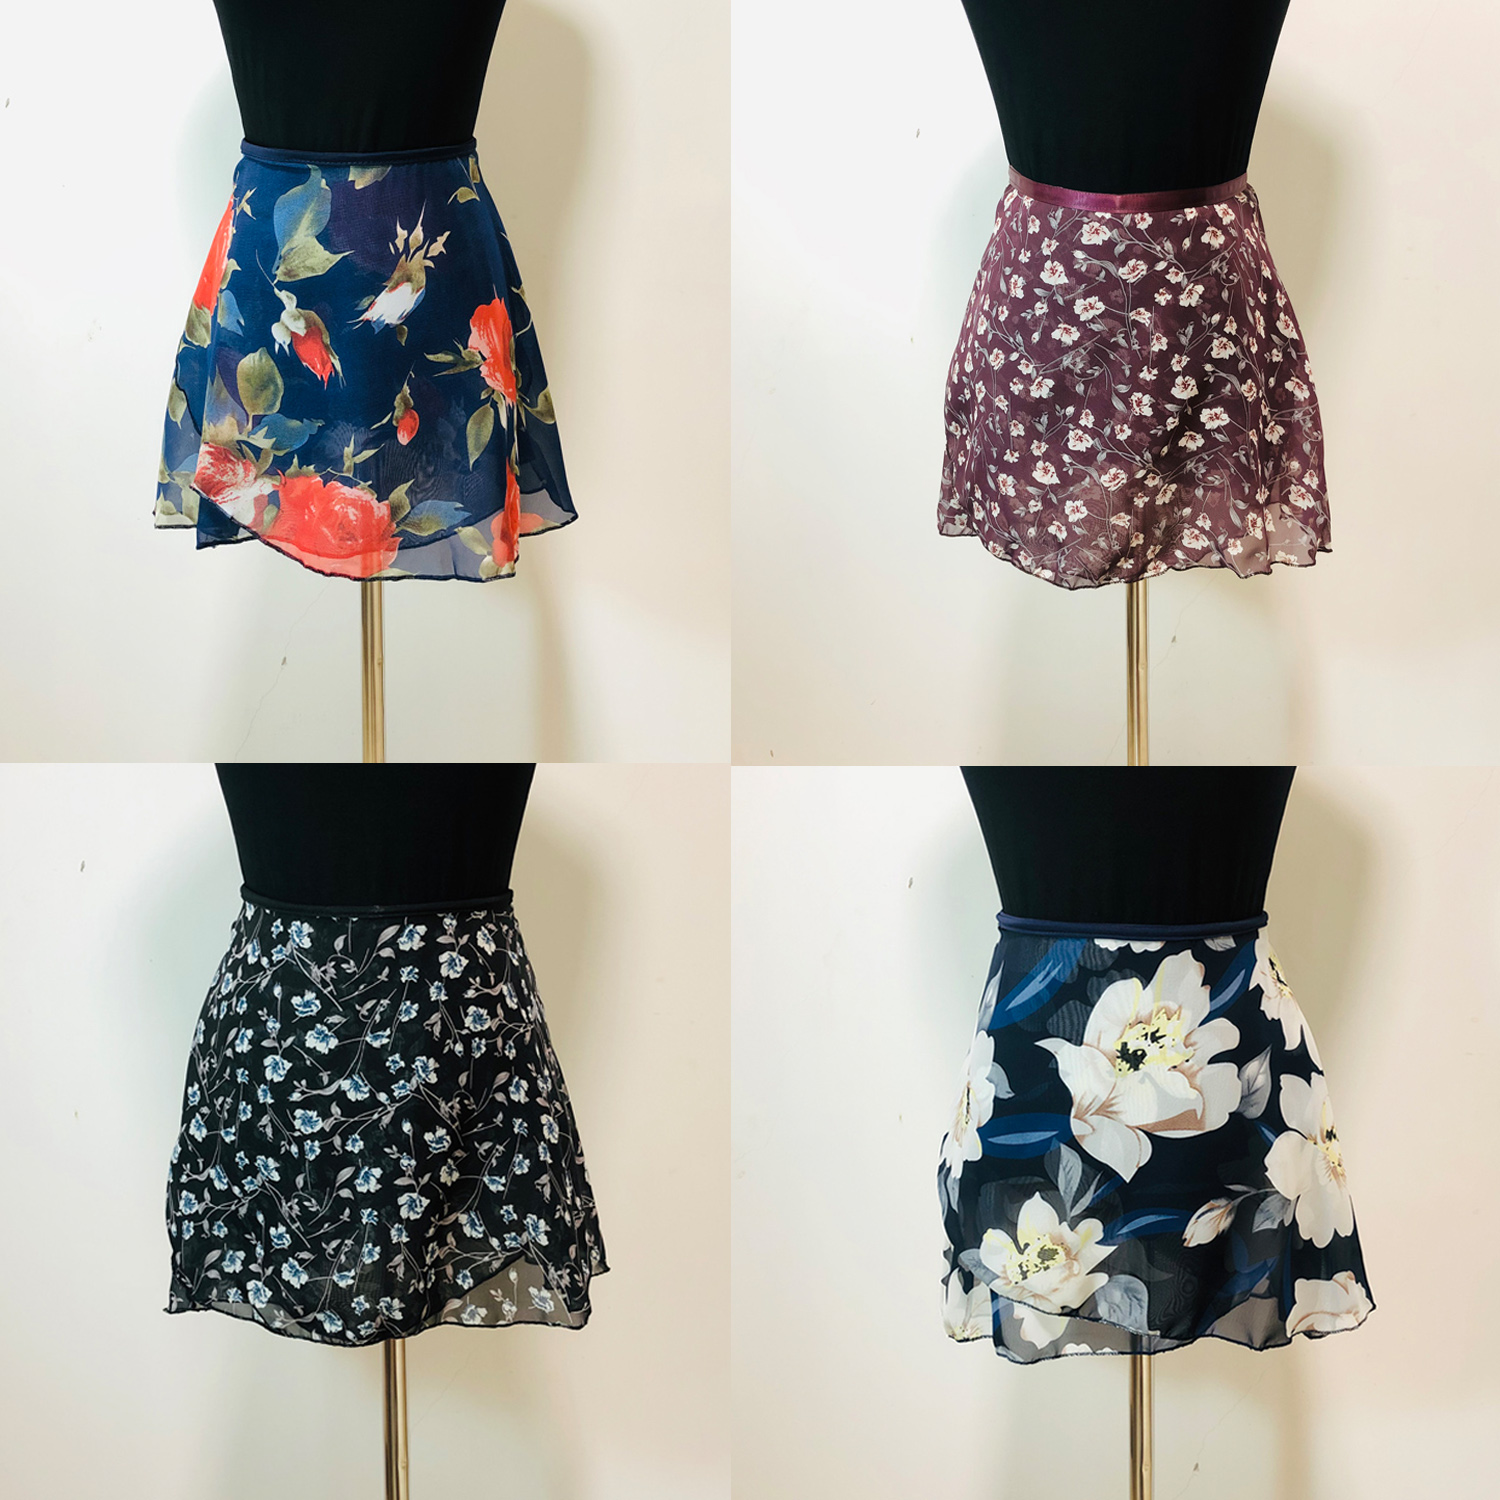 Ballet Tutu Skirt 2020 New Arrival Women Chiffon Flower Practice Ballet Skirt Girls Floral Print Dance Leotard Small Apron